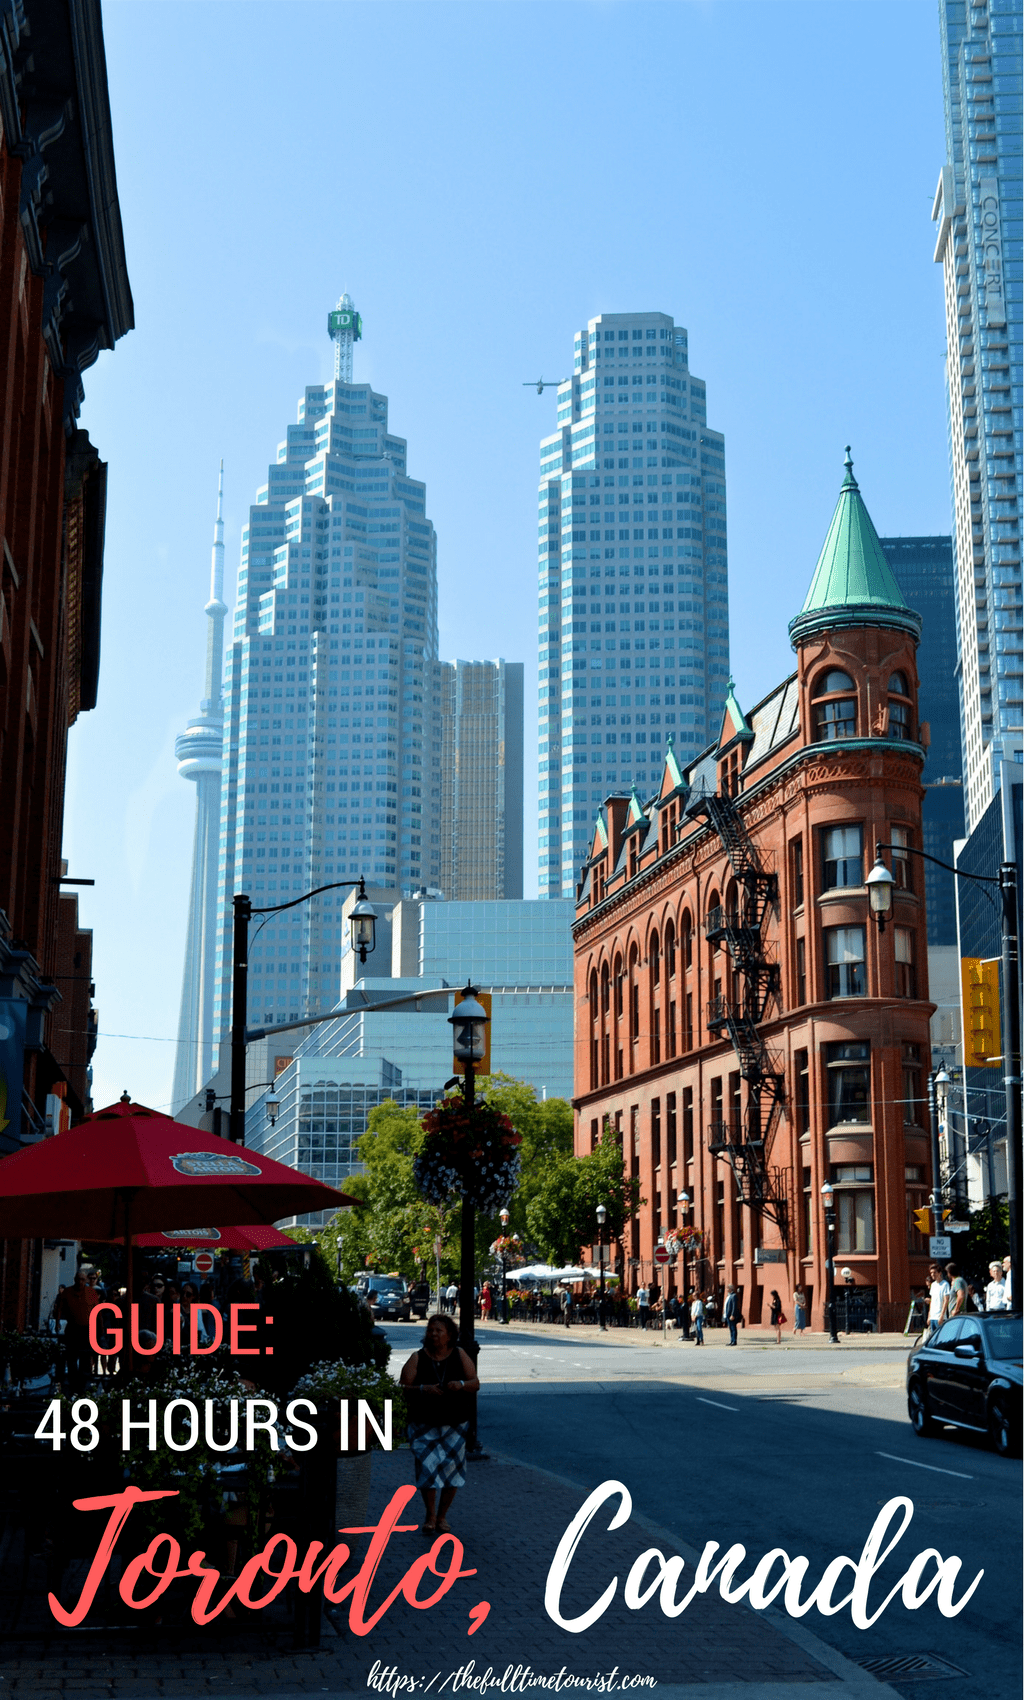 How To See Toronto S Top Attractions In 48 Hours The Full Time Tourist Toronto Travel Canada Travel Canadian Travel